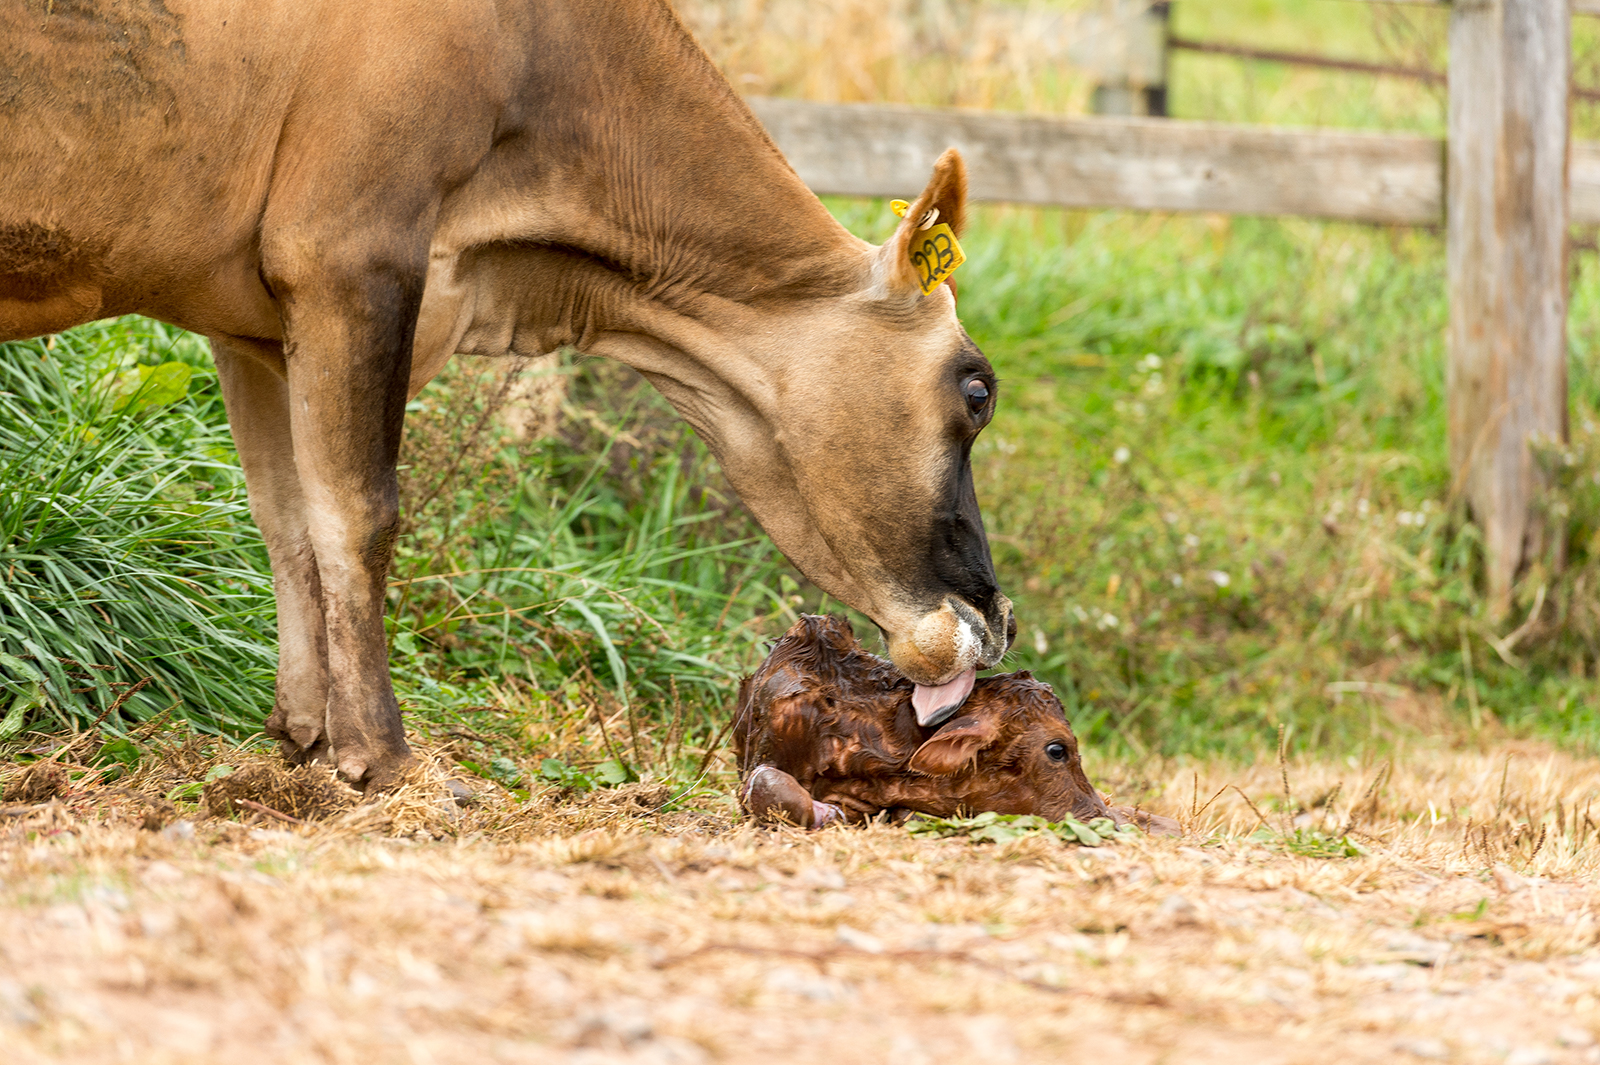 A mother cow cleans her newborn calf.